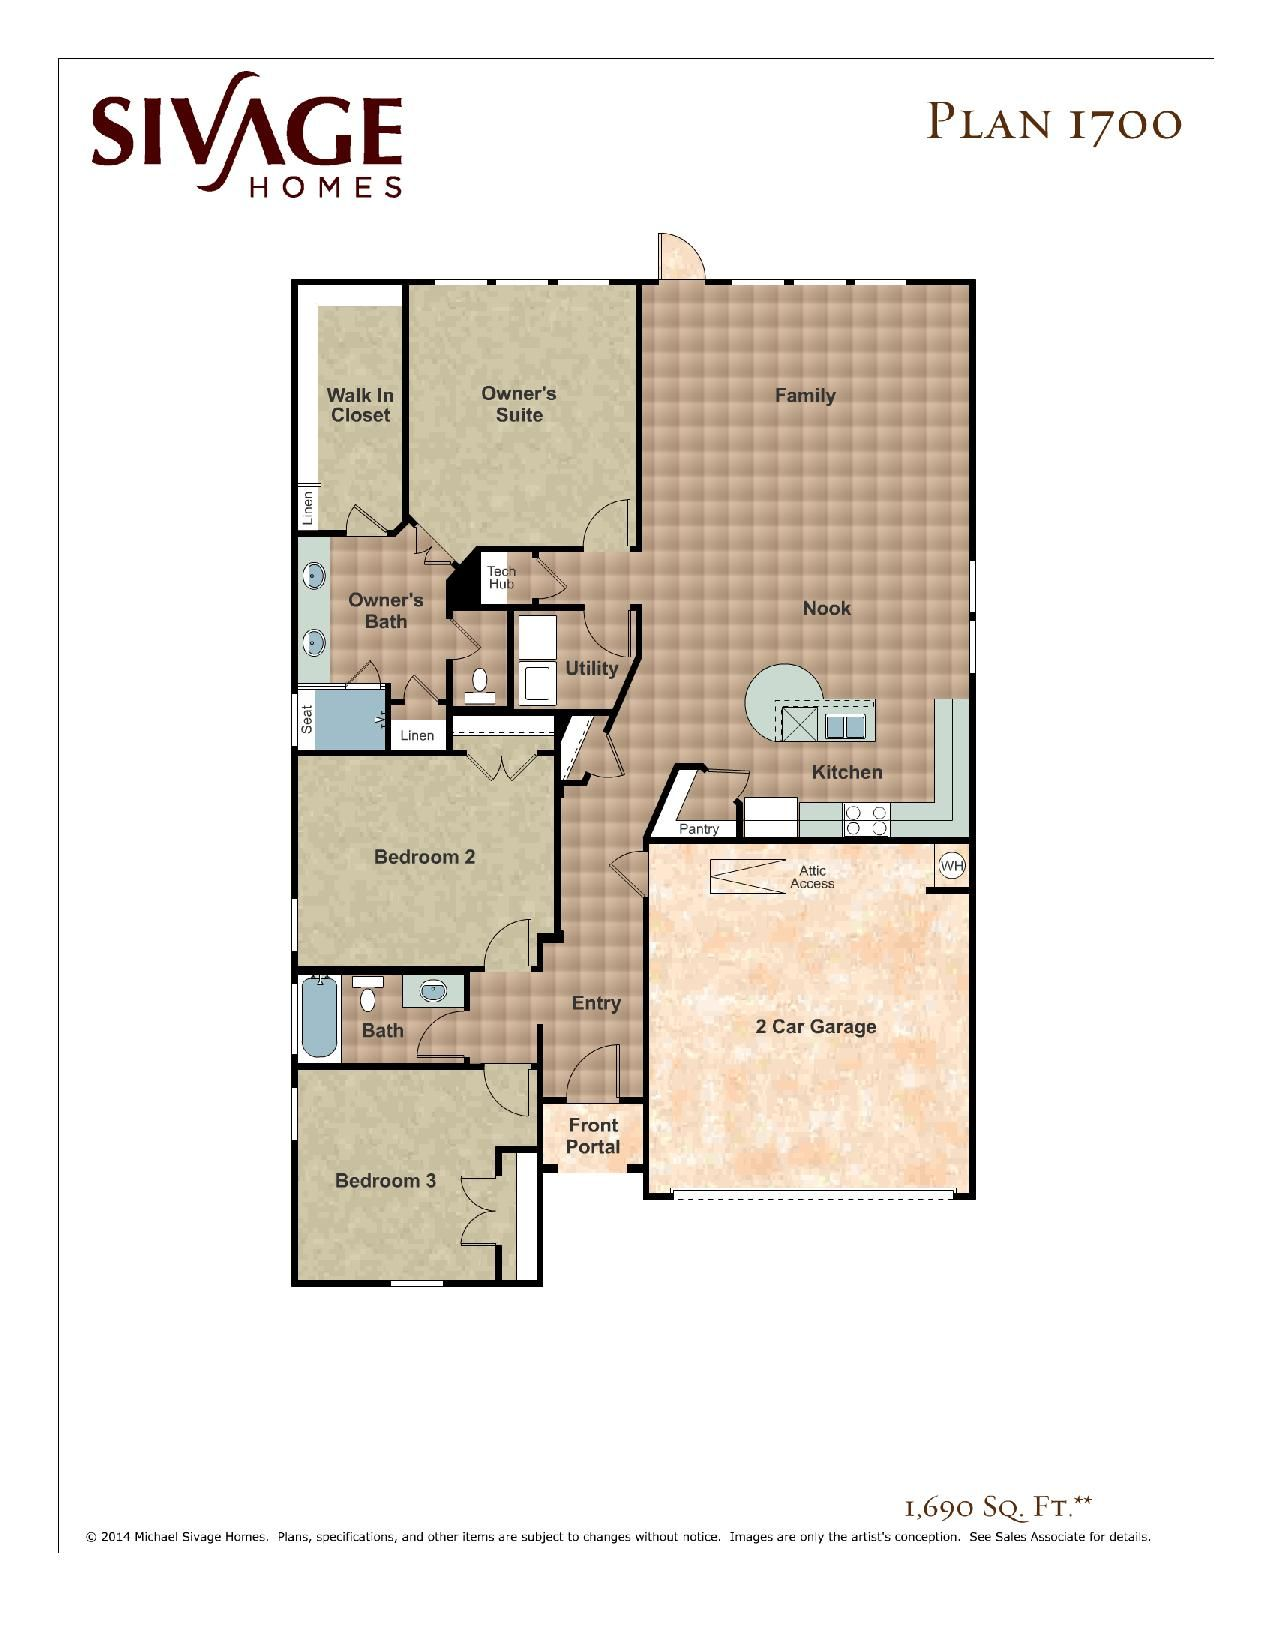 sivage homes 1700 floor plan sivage homes floor plans real estate sivage homes 1700 floor plan